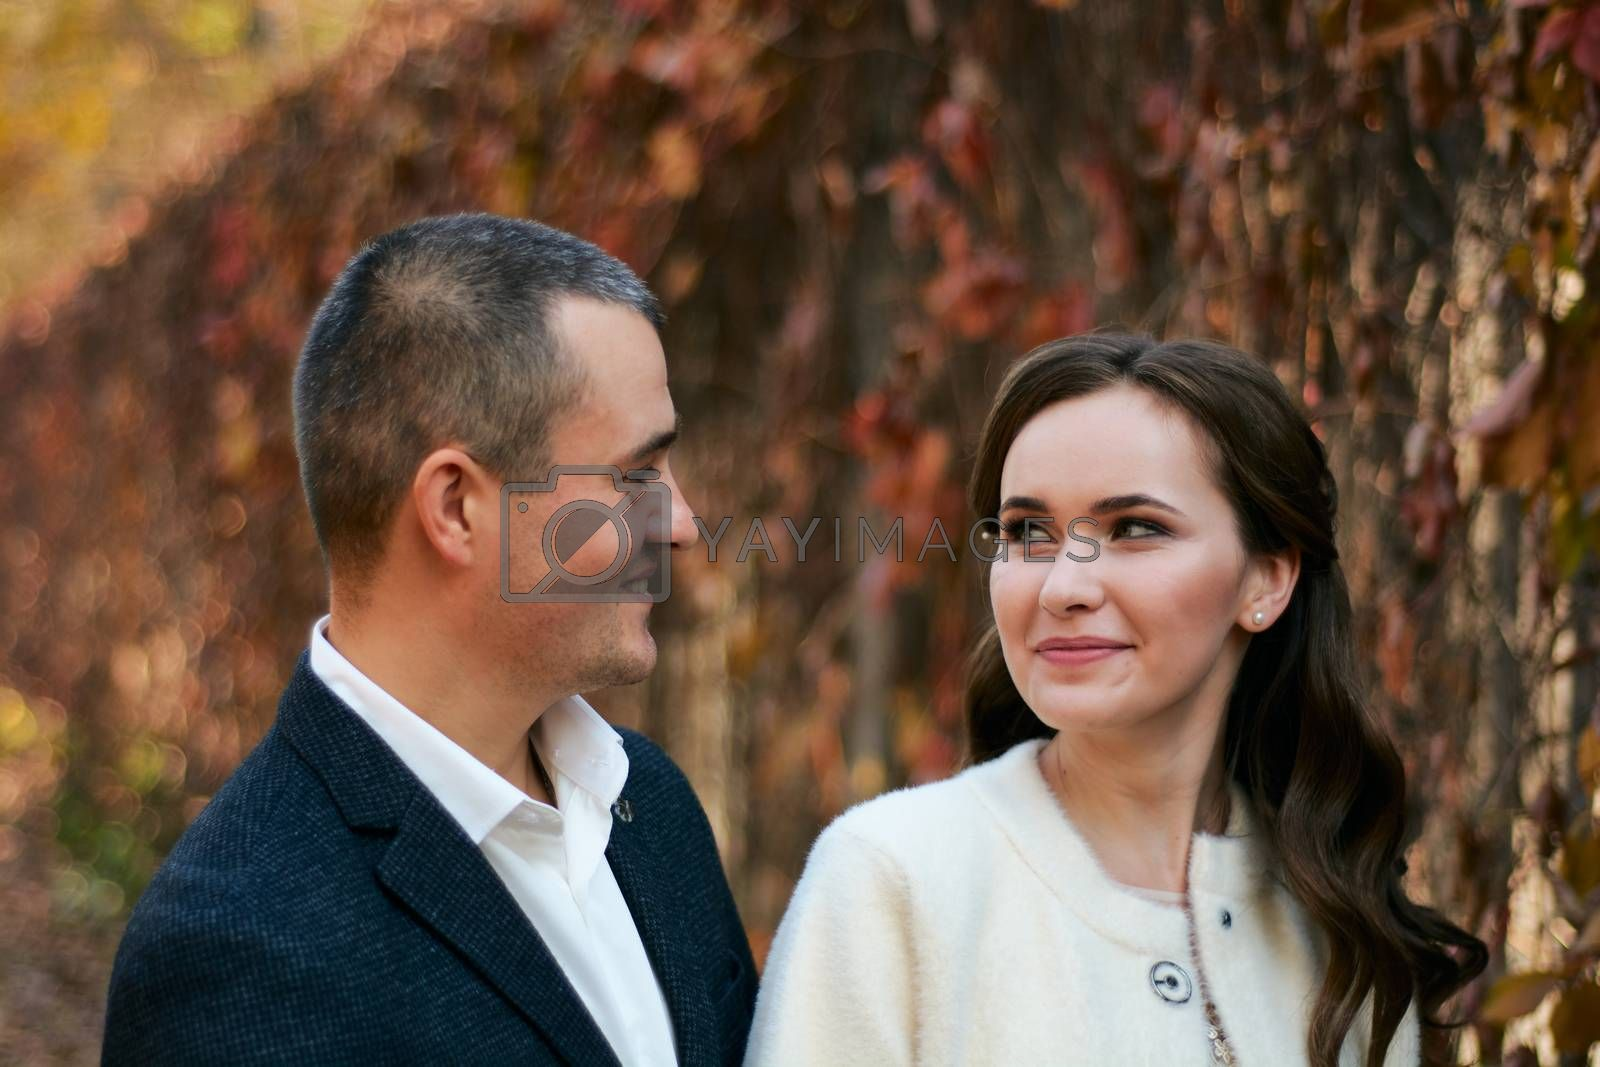 Couple in love close-up portrait. Young male and woman just married. Concept of happy family. Modern family outdoor.